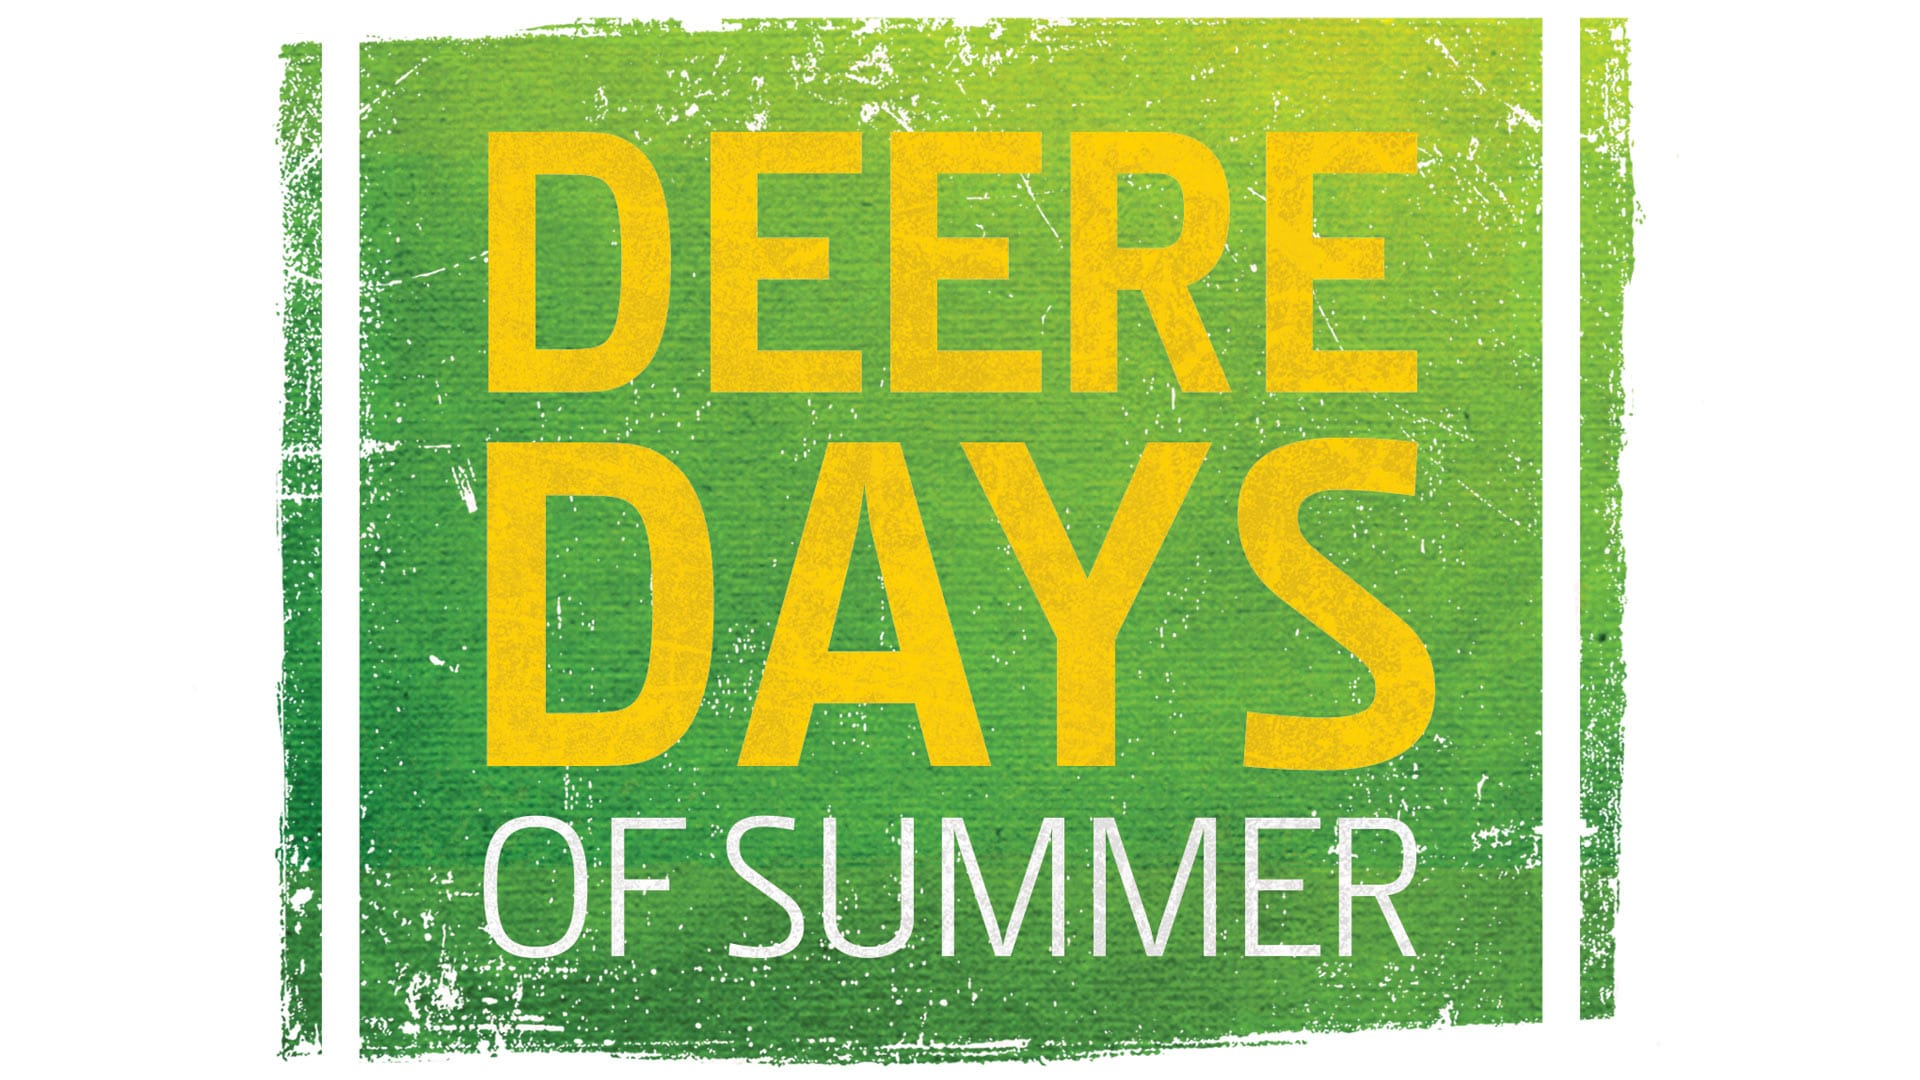 Deere Days of Summer logo